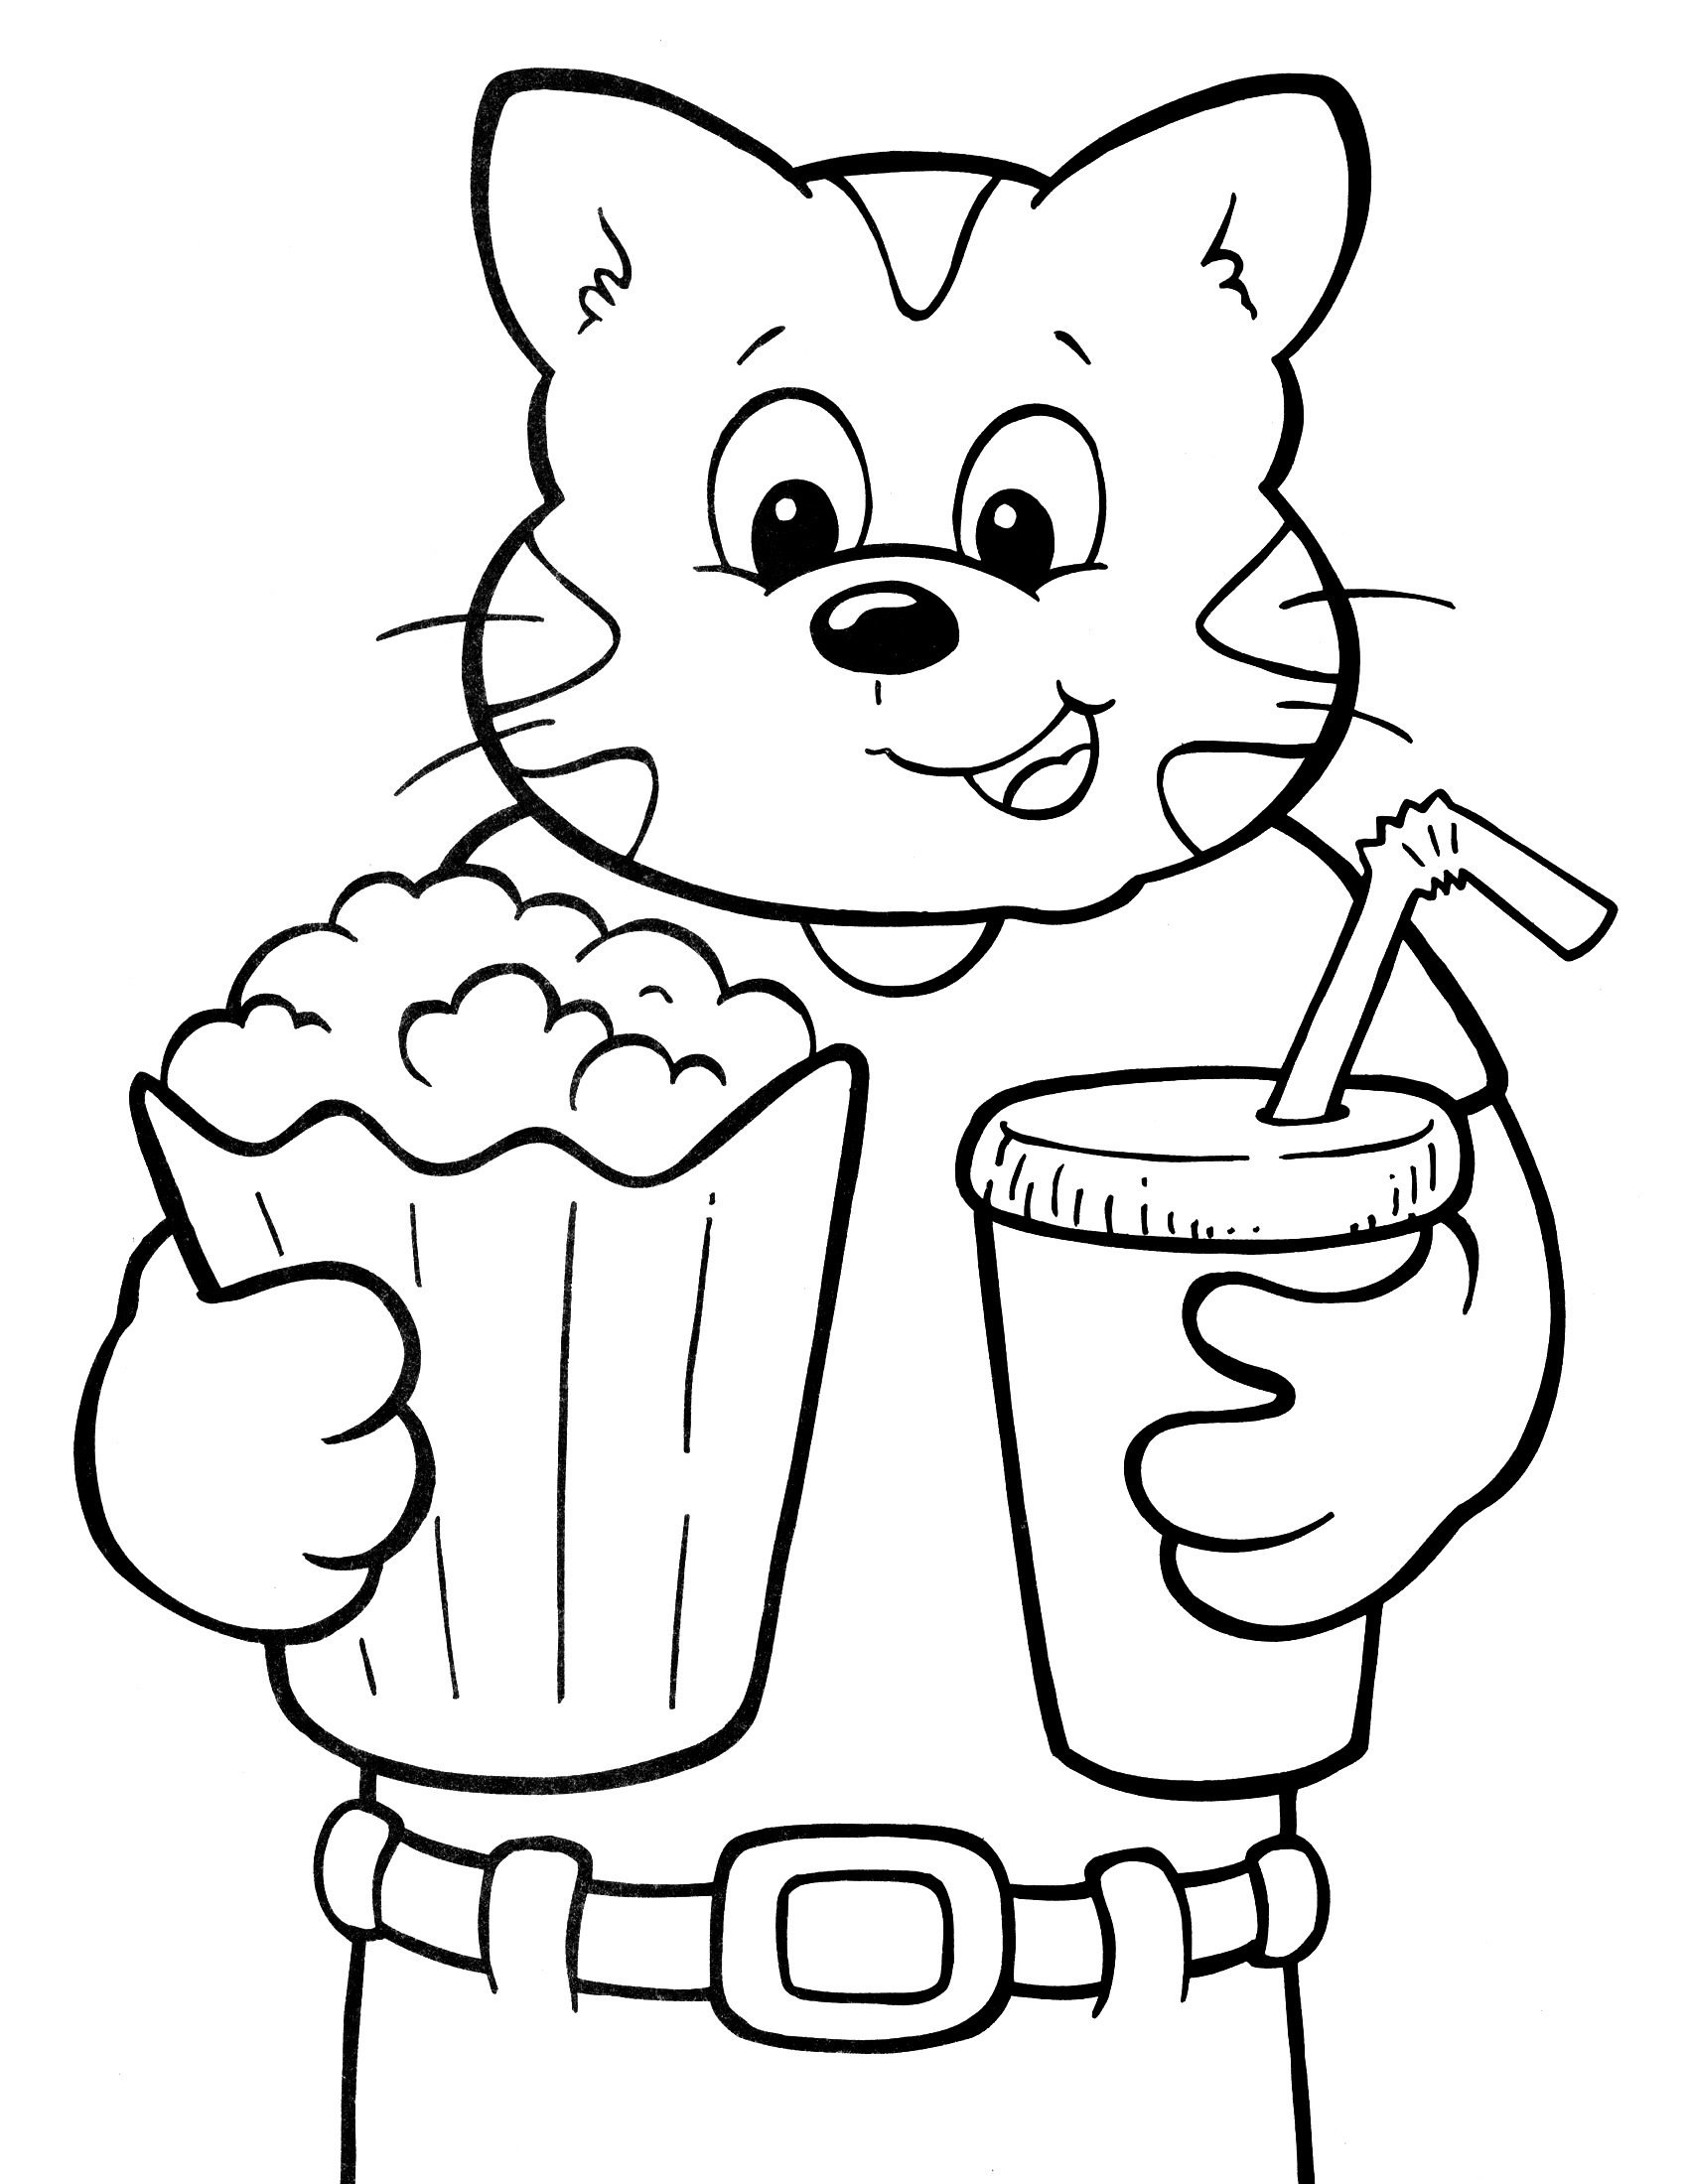 Crayola Coloring Pages For Kids Learning Printable